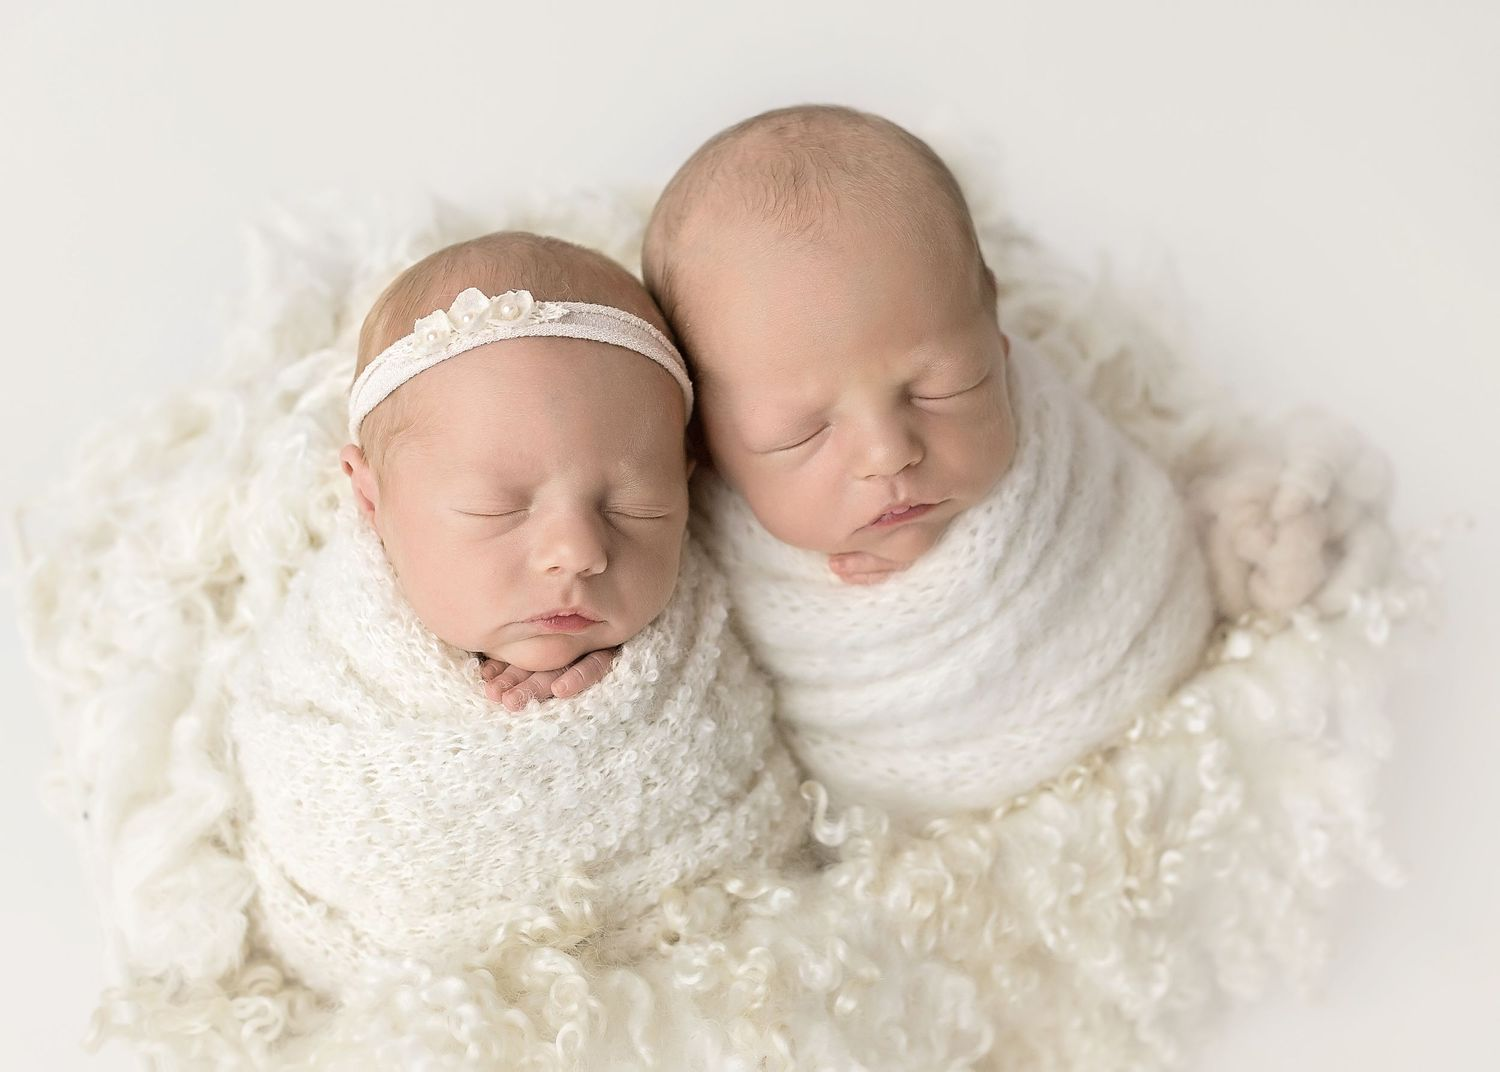 newborn twins snuggling